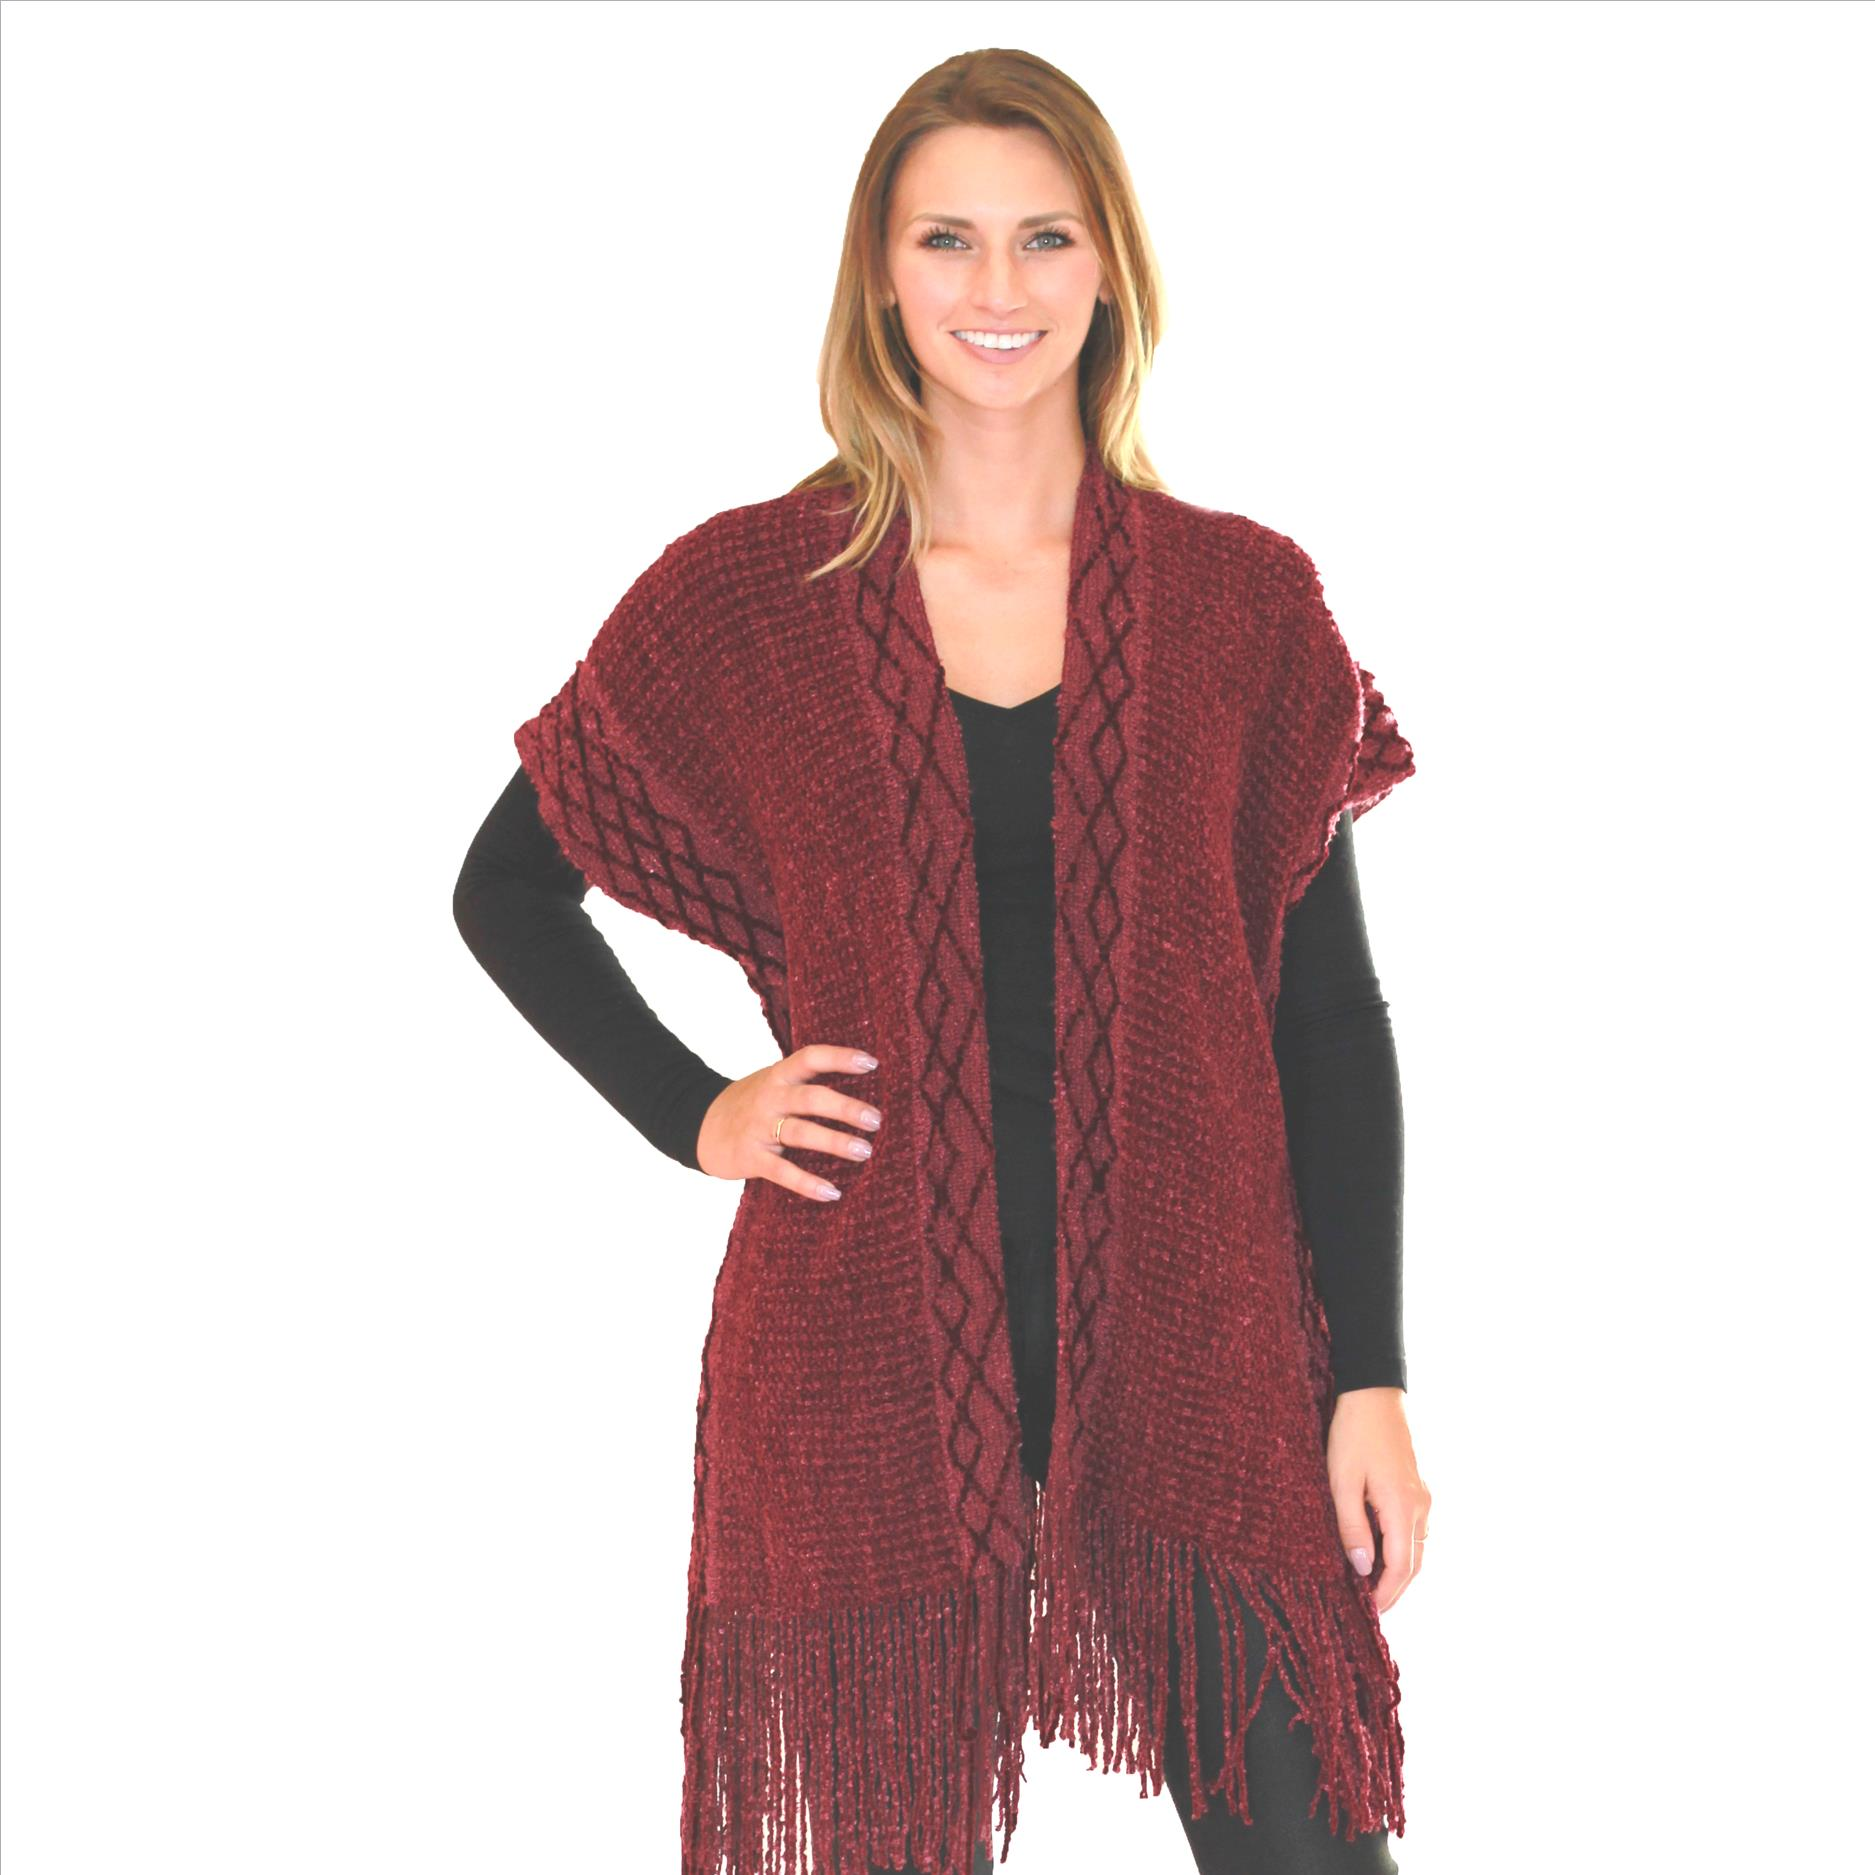 6 Pack Intricate Knit Cardigan - Burgundy